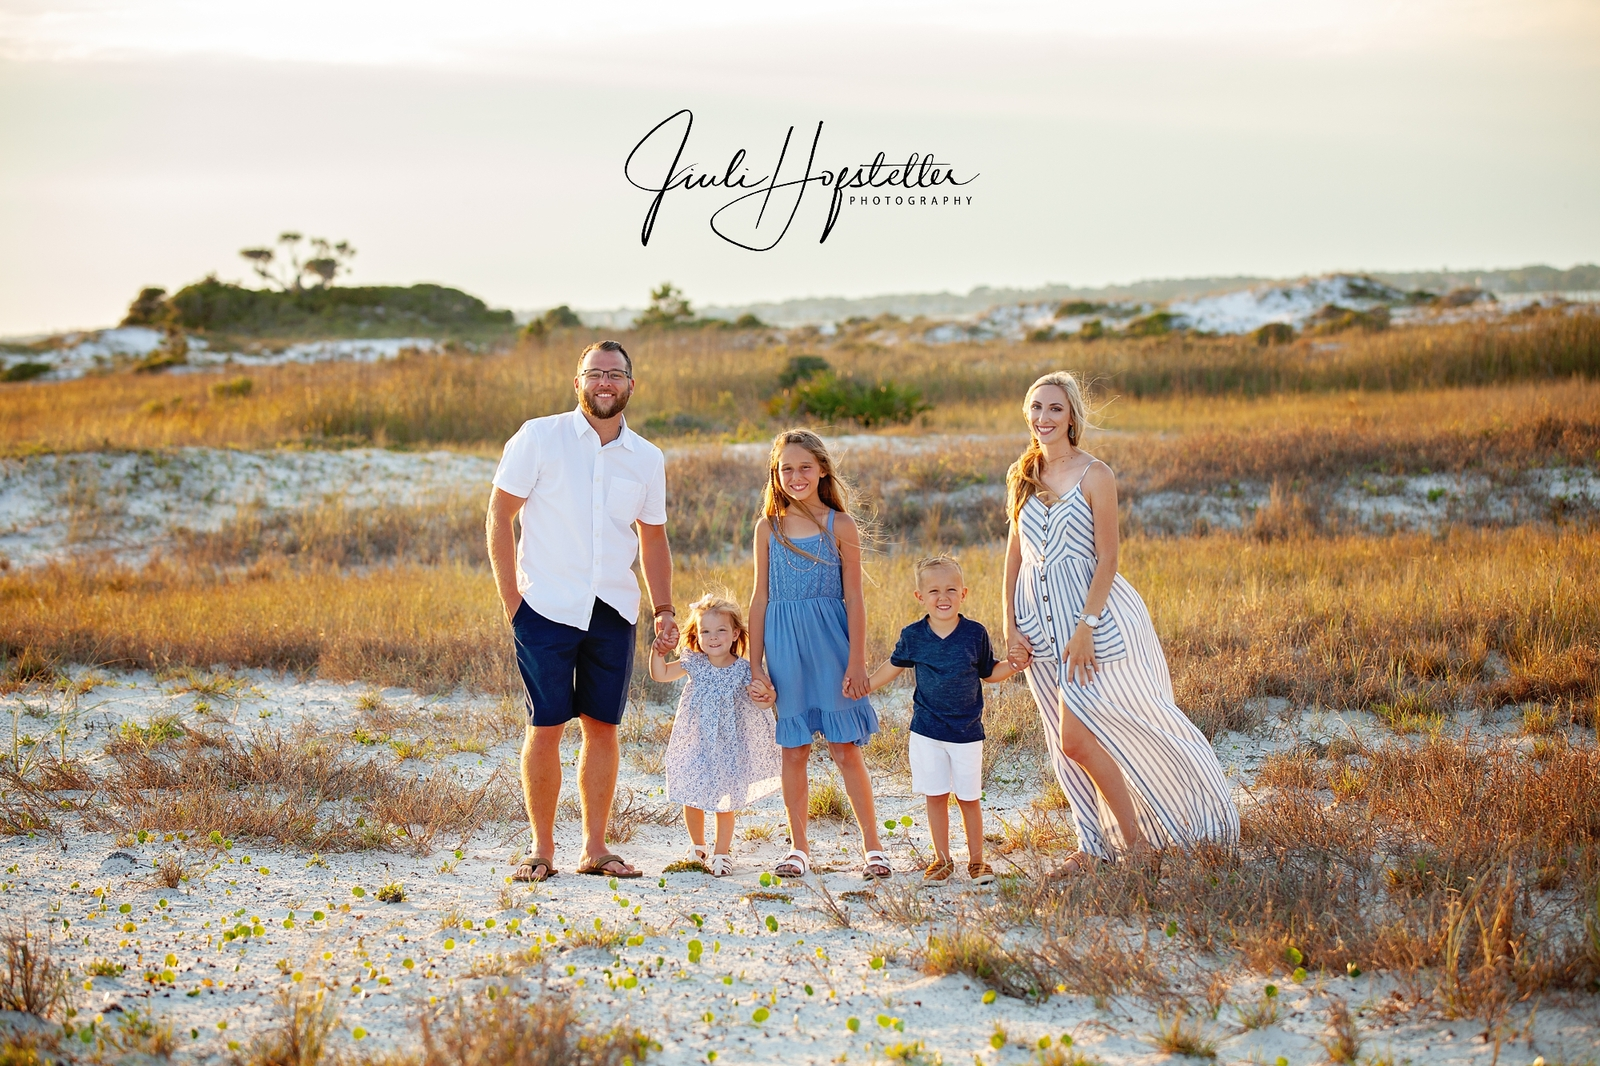 Pensacola Family Photographer Pensacola Beach Family Photographer Pensacola Beach Photographer Family Photographer Pensacola Family Pictures Family Photography